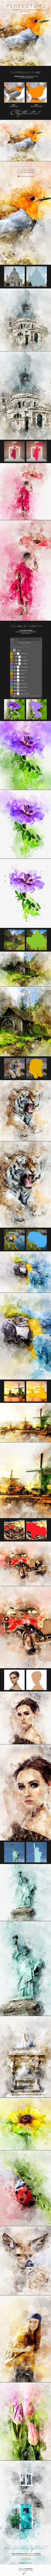 Perfectum 2 - Watercolor Artist Photoshop Action https://graphicriver.net/item/perfectum-2-watercolor-artist-photoshop-action/19501970?ref=7h10